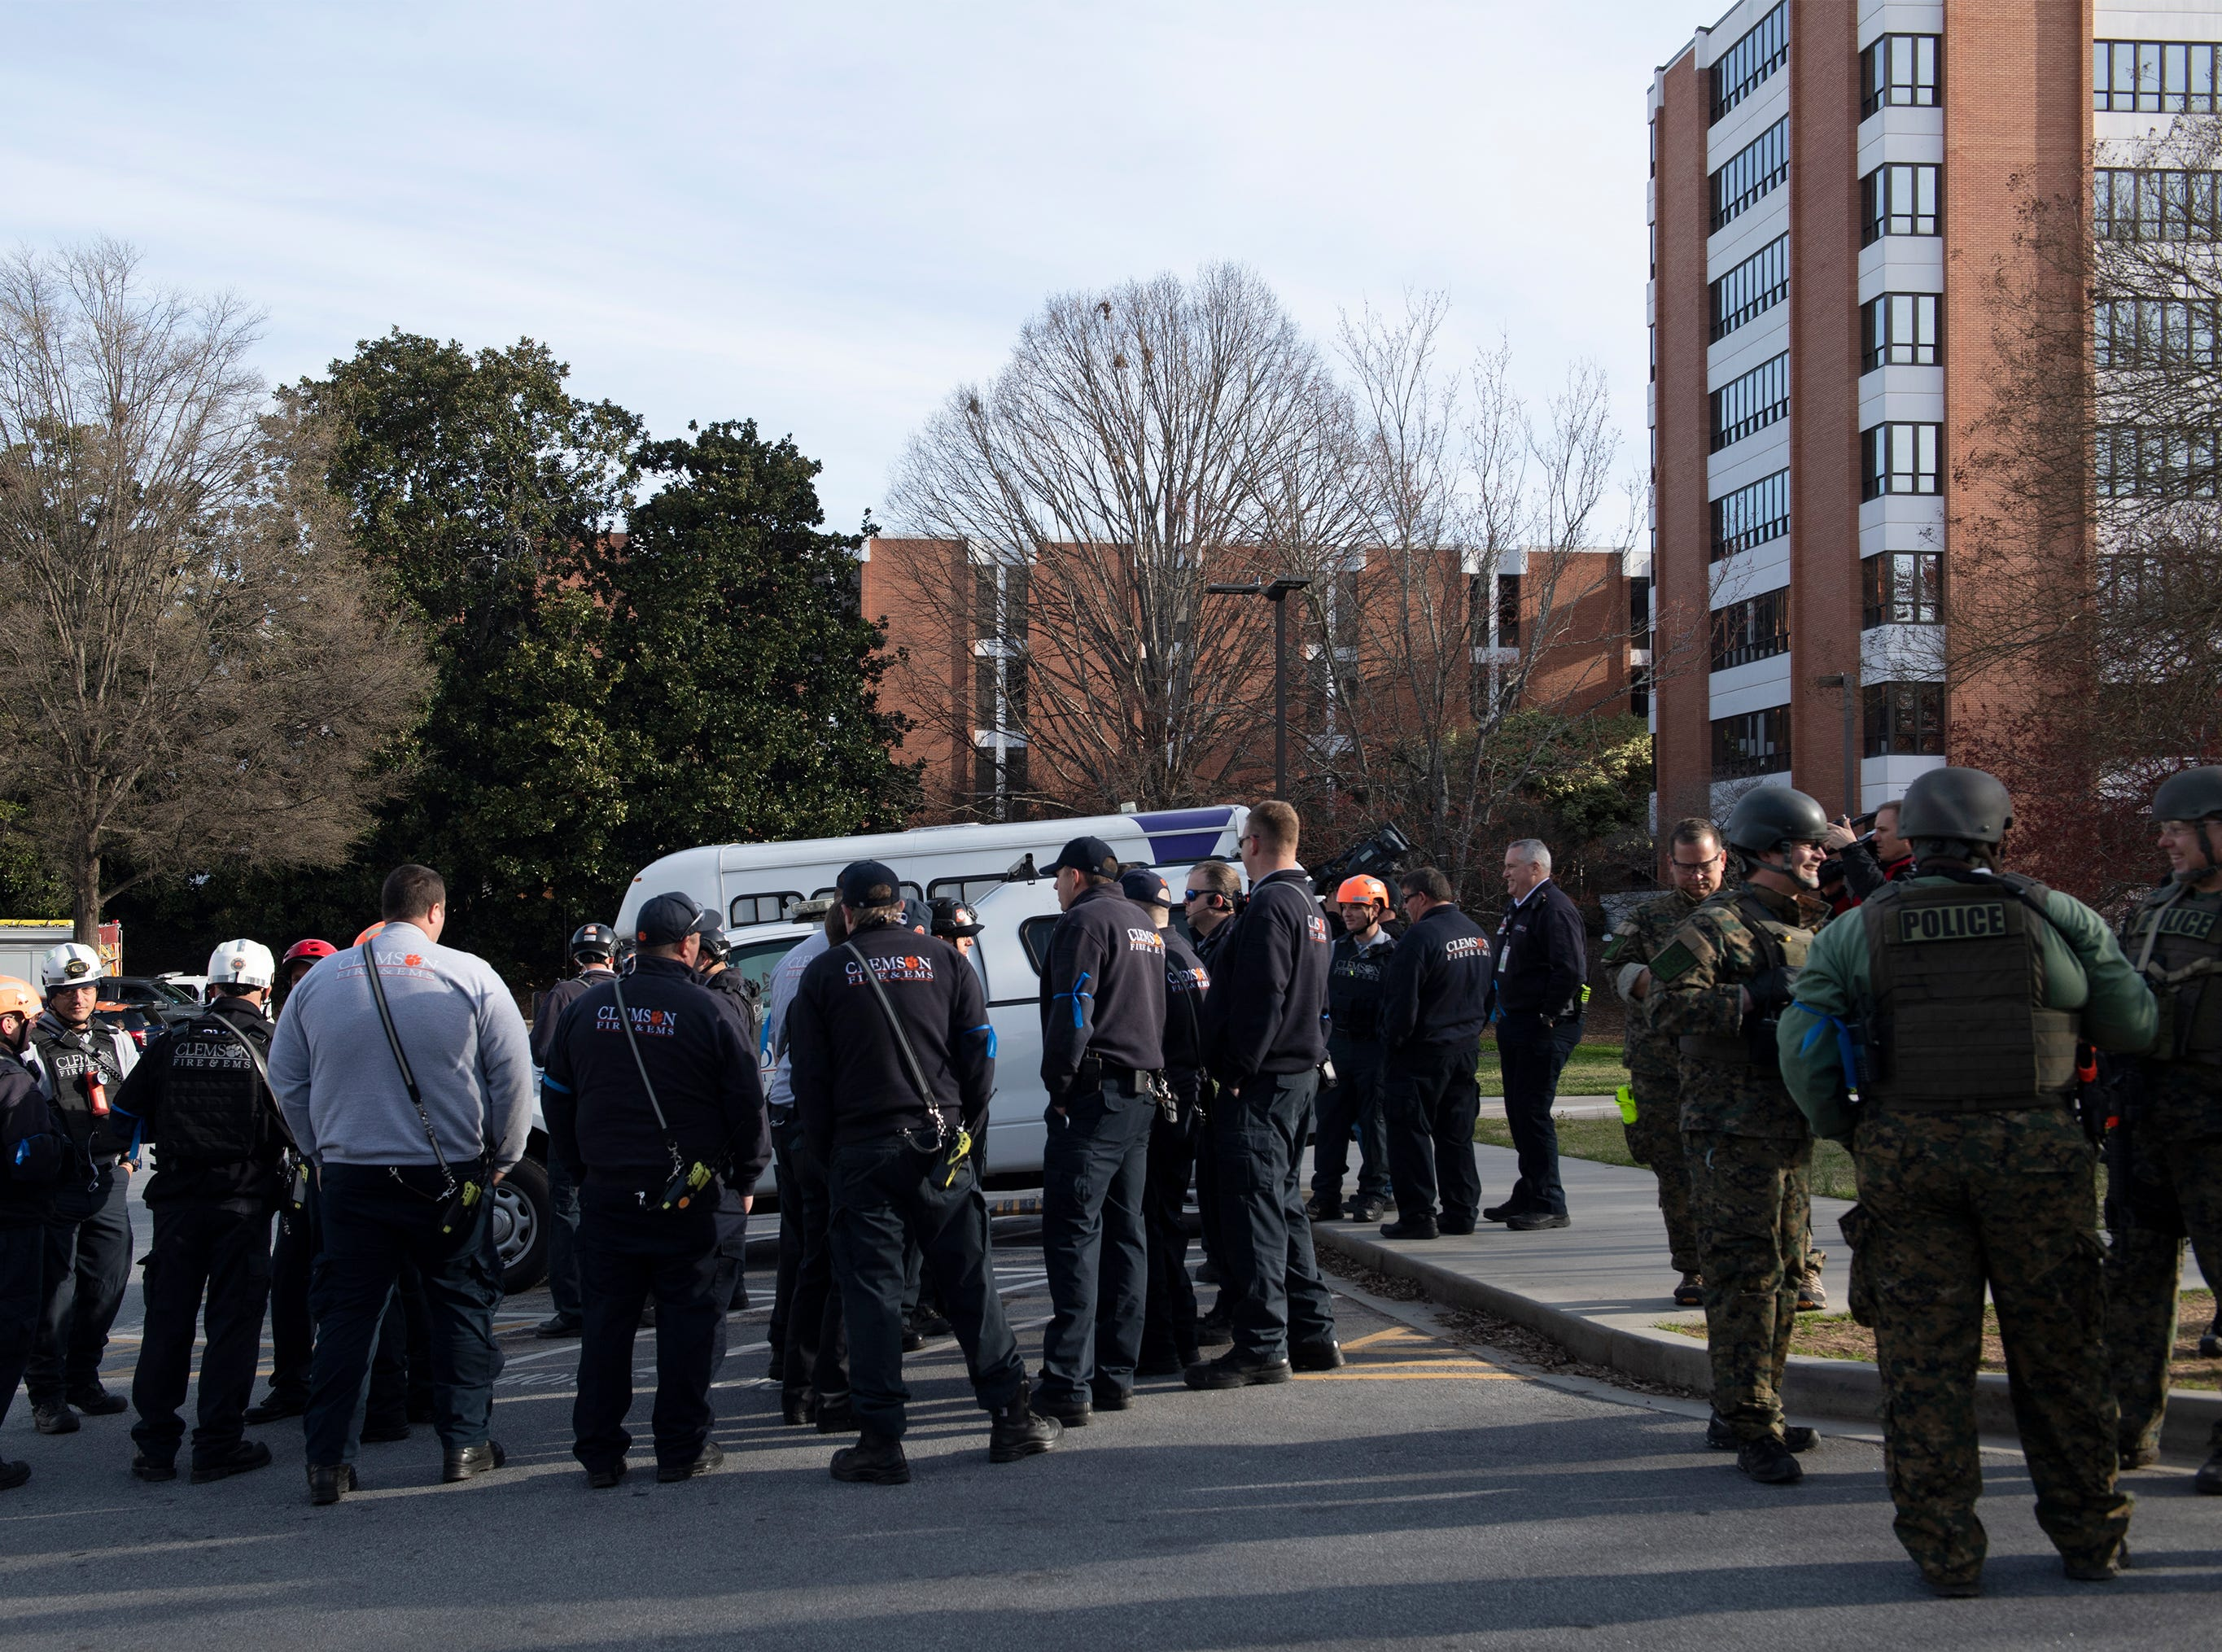 Emergency personnel from Clemson University and surrounding areas gather outside Daniel Hall before the start of an active shooter exercise Tuesday, Mar. 19, 2019.